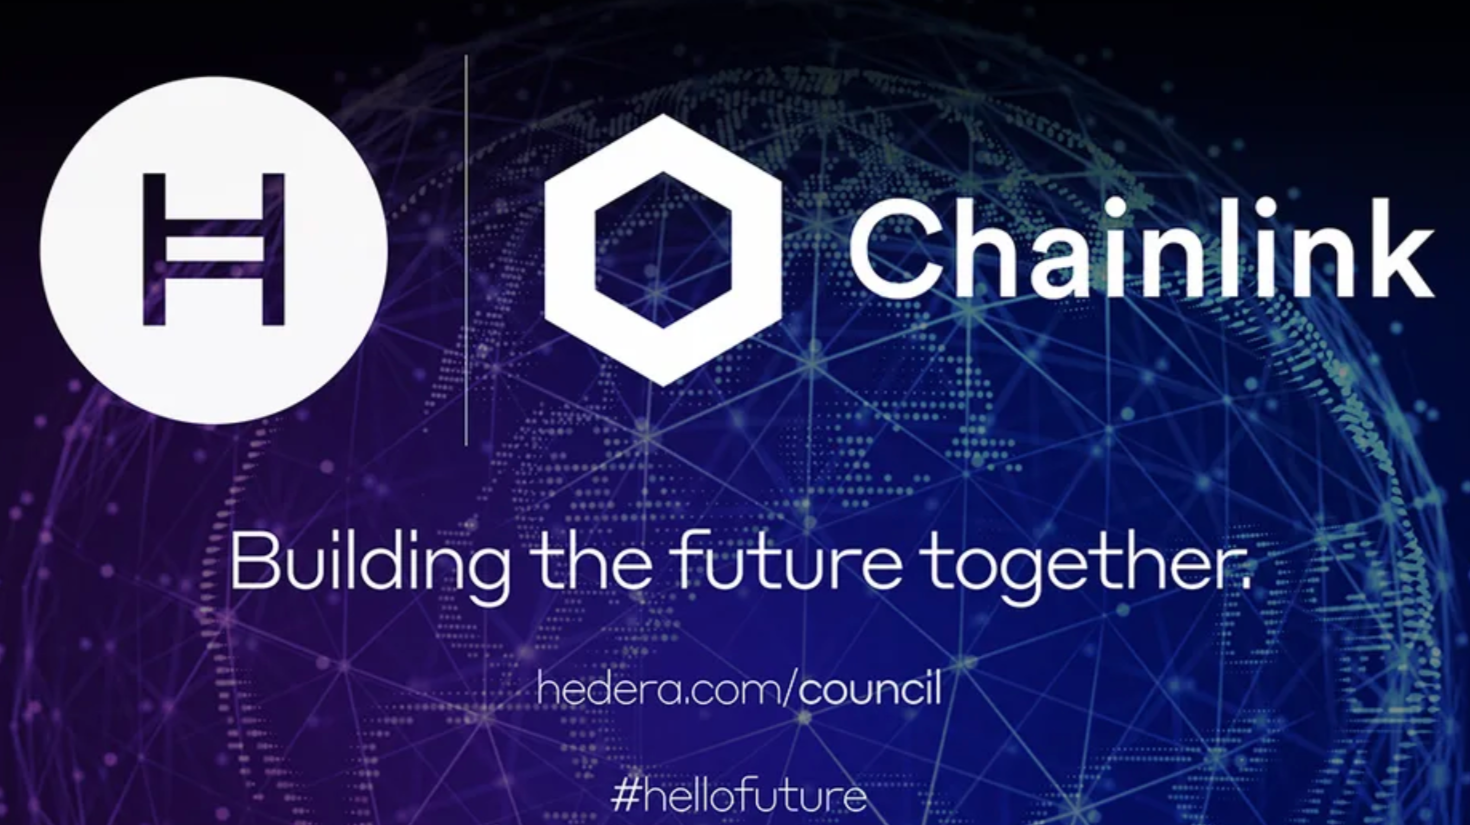 Chainlink x Hedera Hashgraph Governing Council Partnership